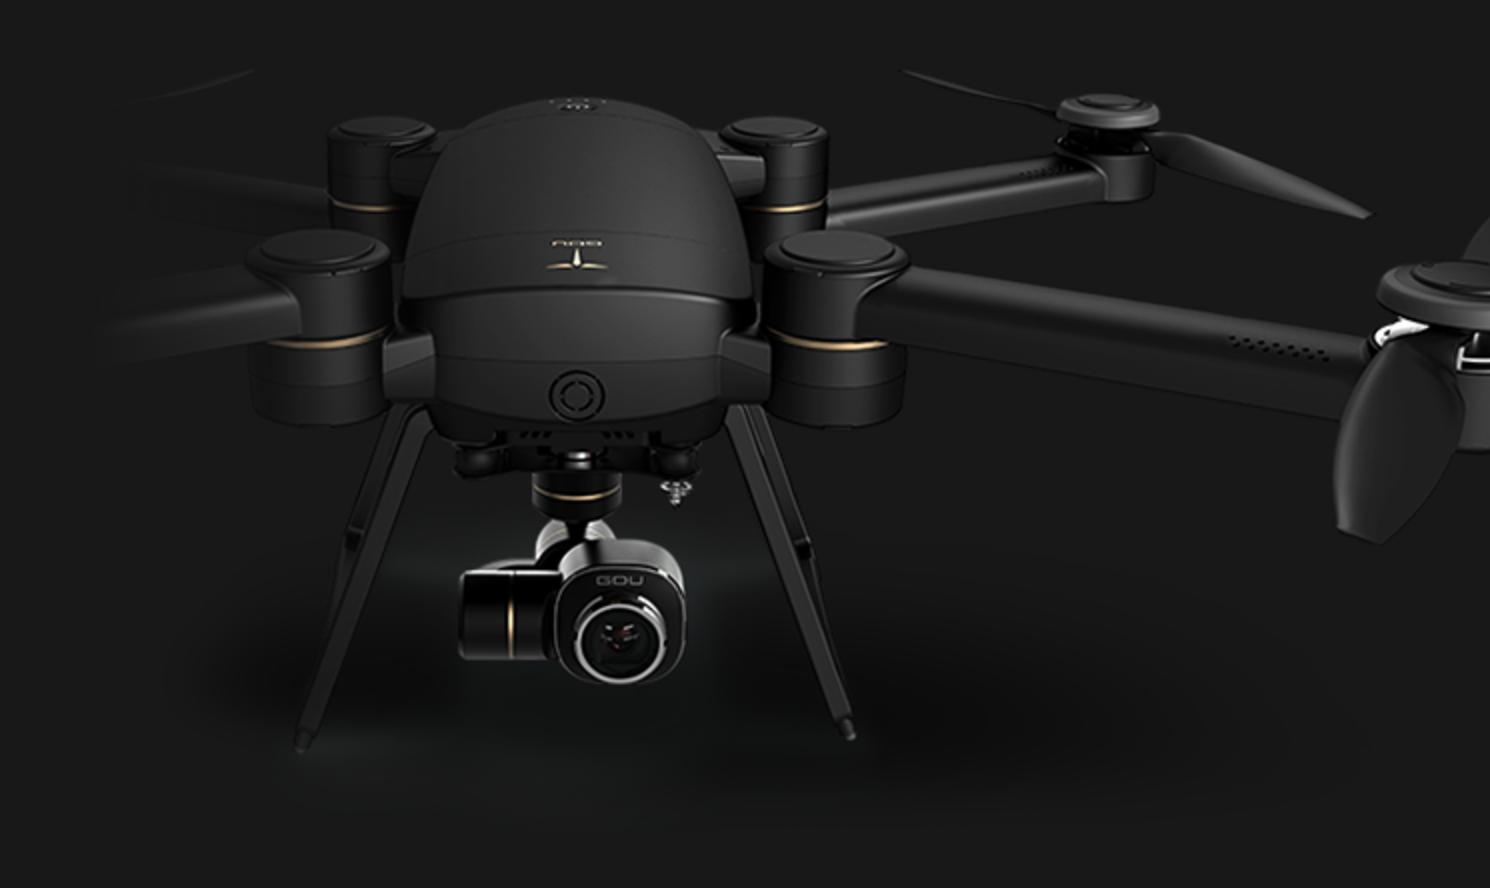 GDU will try again to compete with DJI and the Mavic line of drones